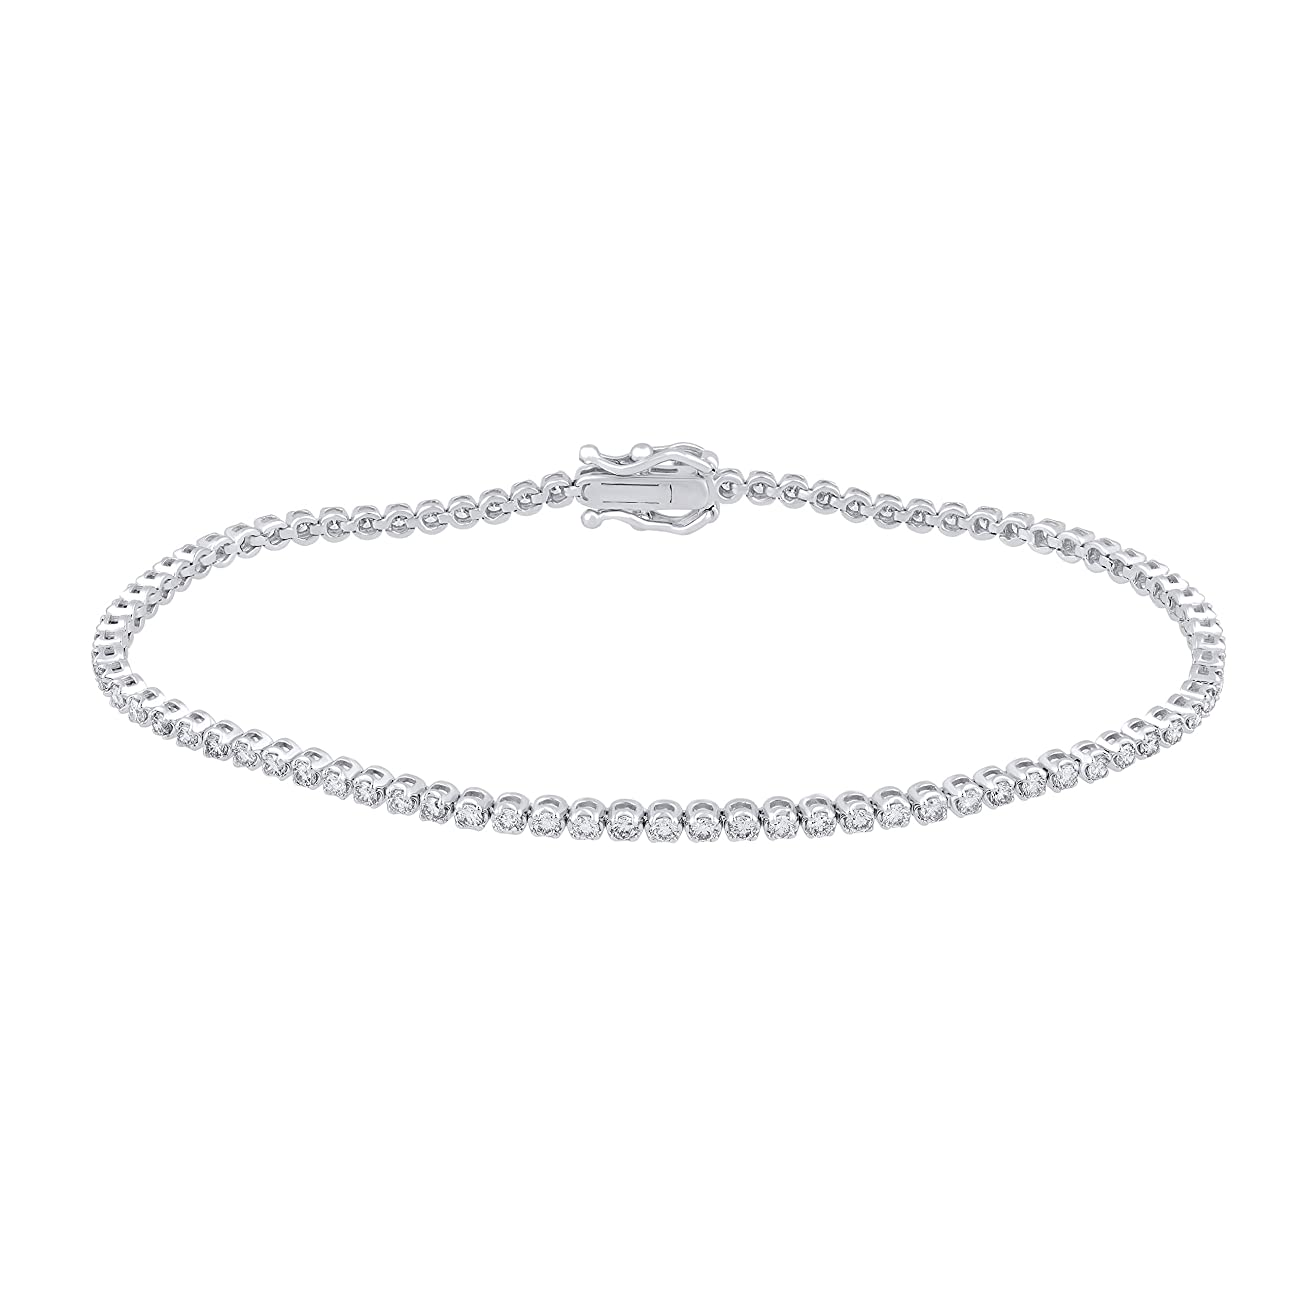 IGI Certified 1.20 Carat Natural Diamond Bracelet 18K White Gold (I-J Color, SI2-I1-Clarity) Diamond Bracelet for Women Diamond Jewelry Gifts for Women